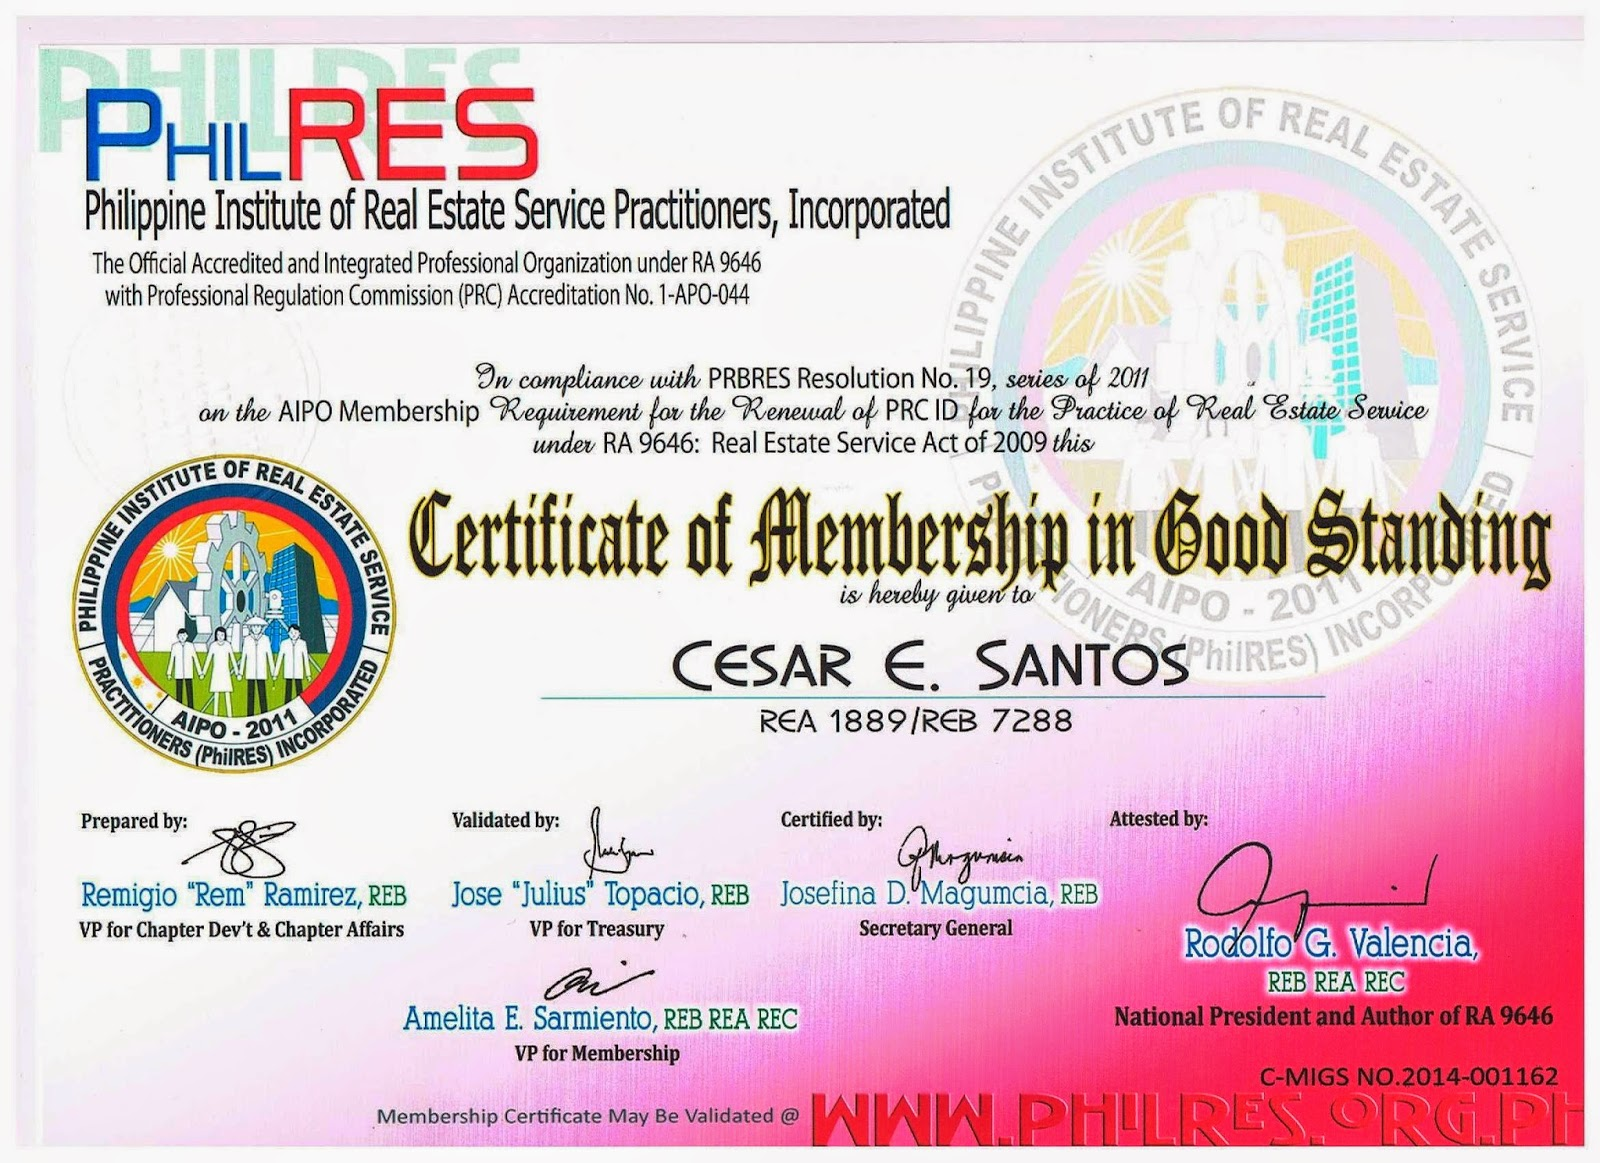 How To Apply For Philres Membership In Good Standing C Migs Ces